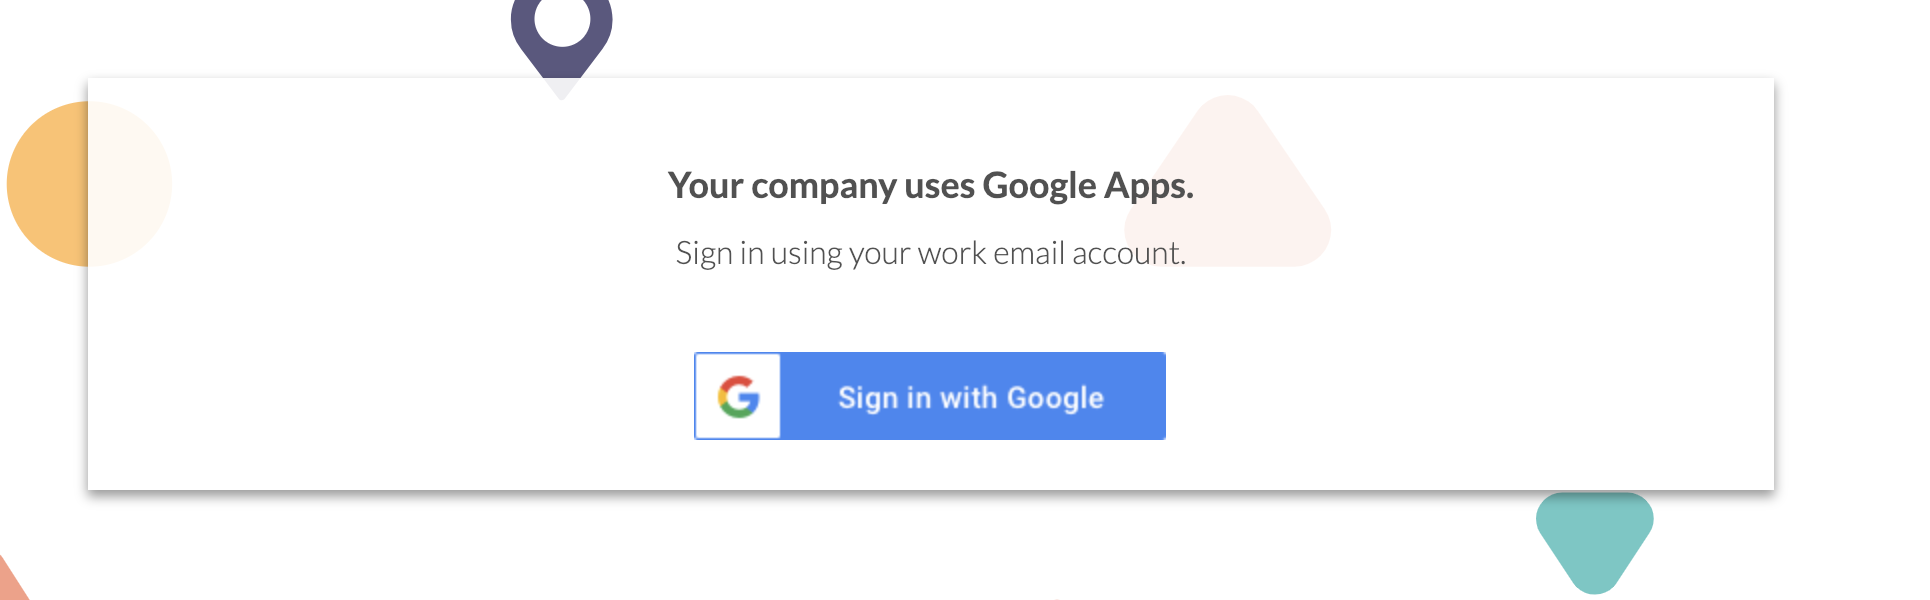 security deep dive sign in google step 2.png